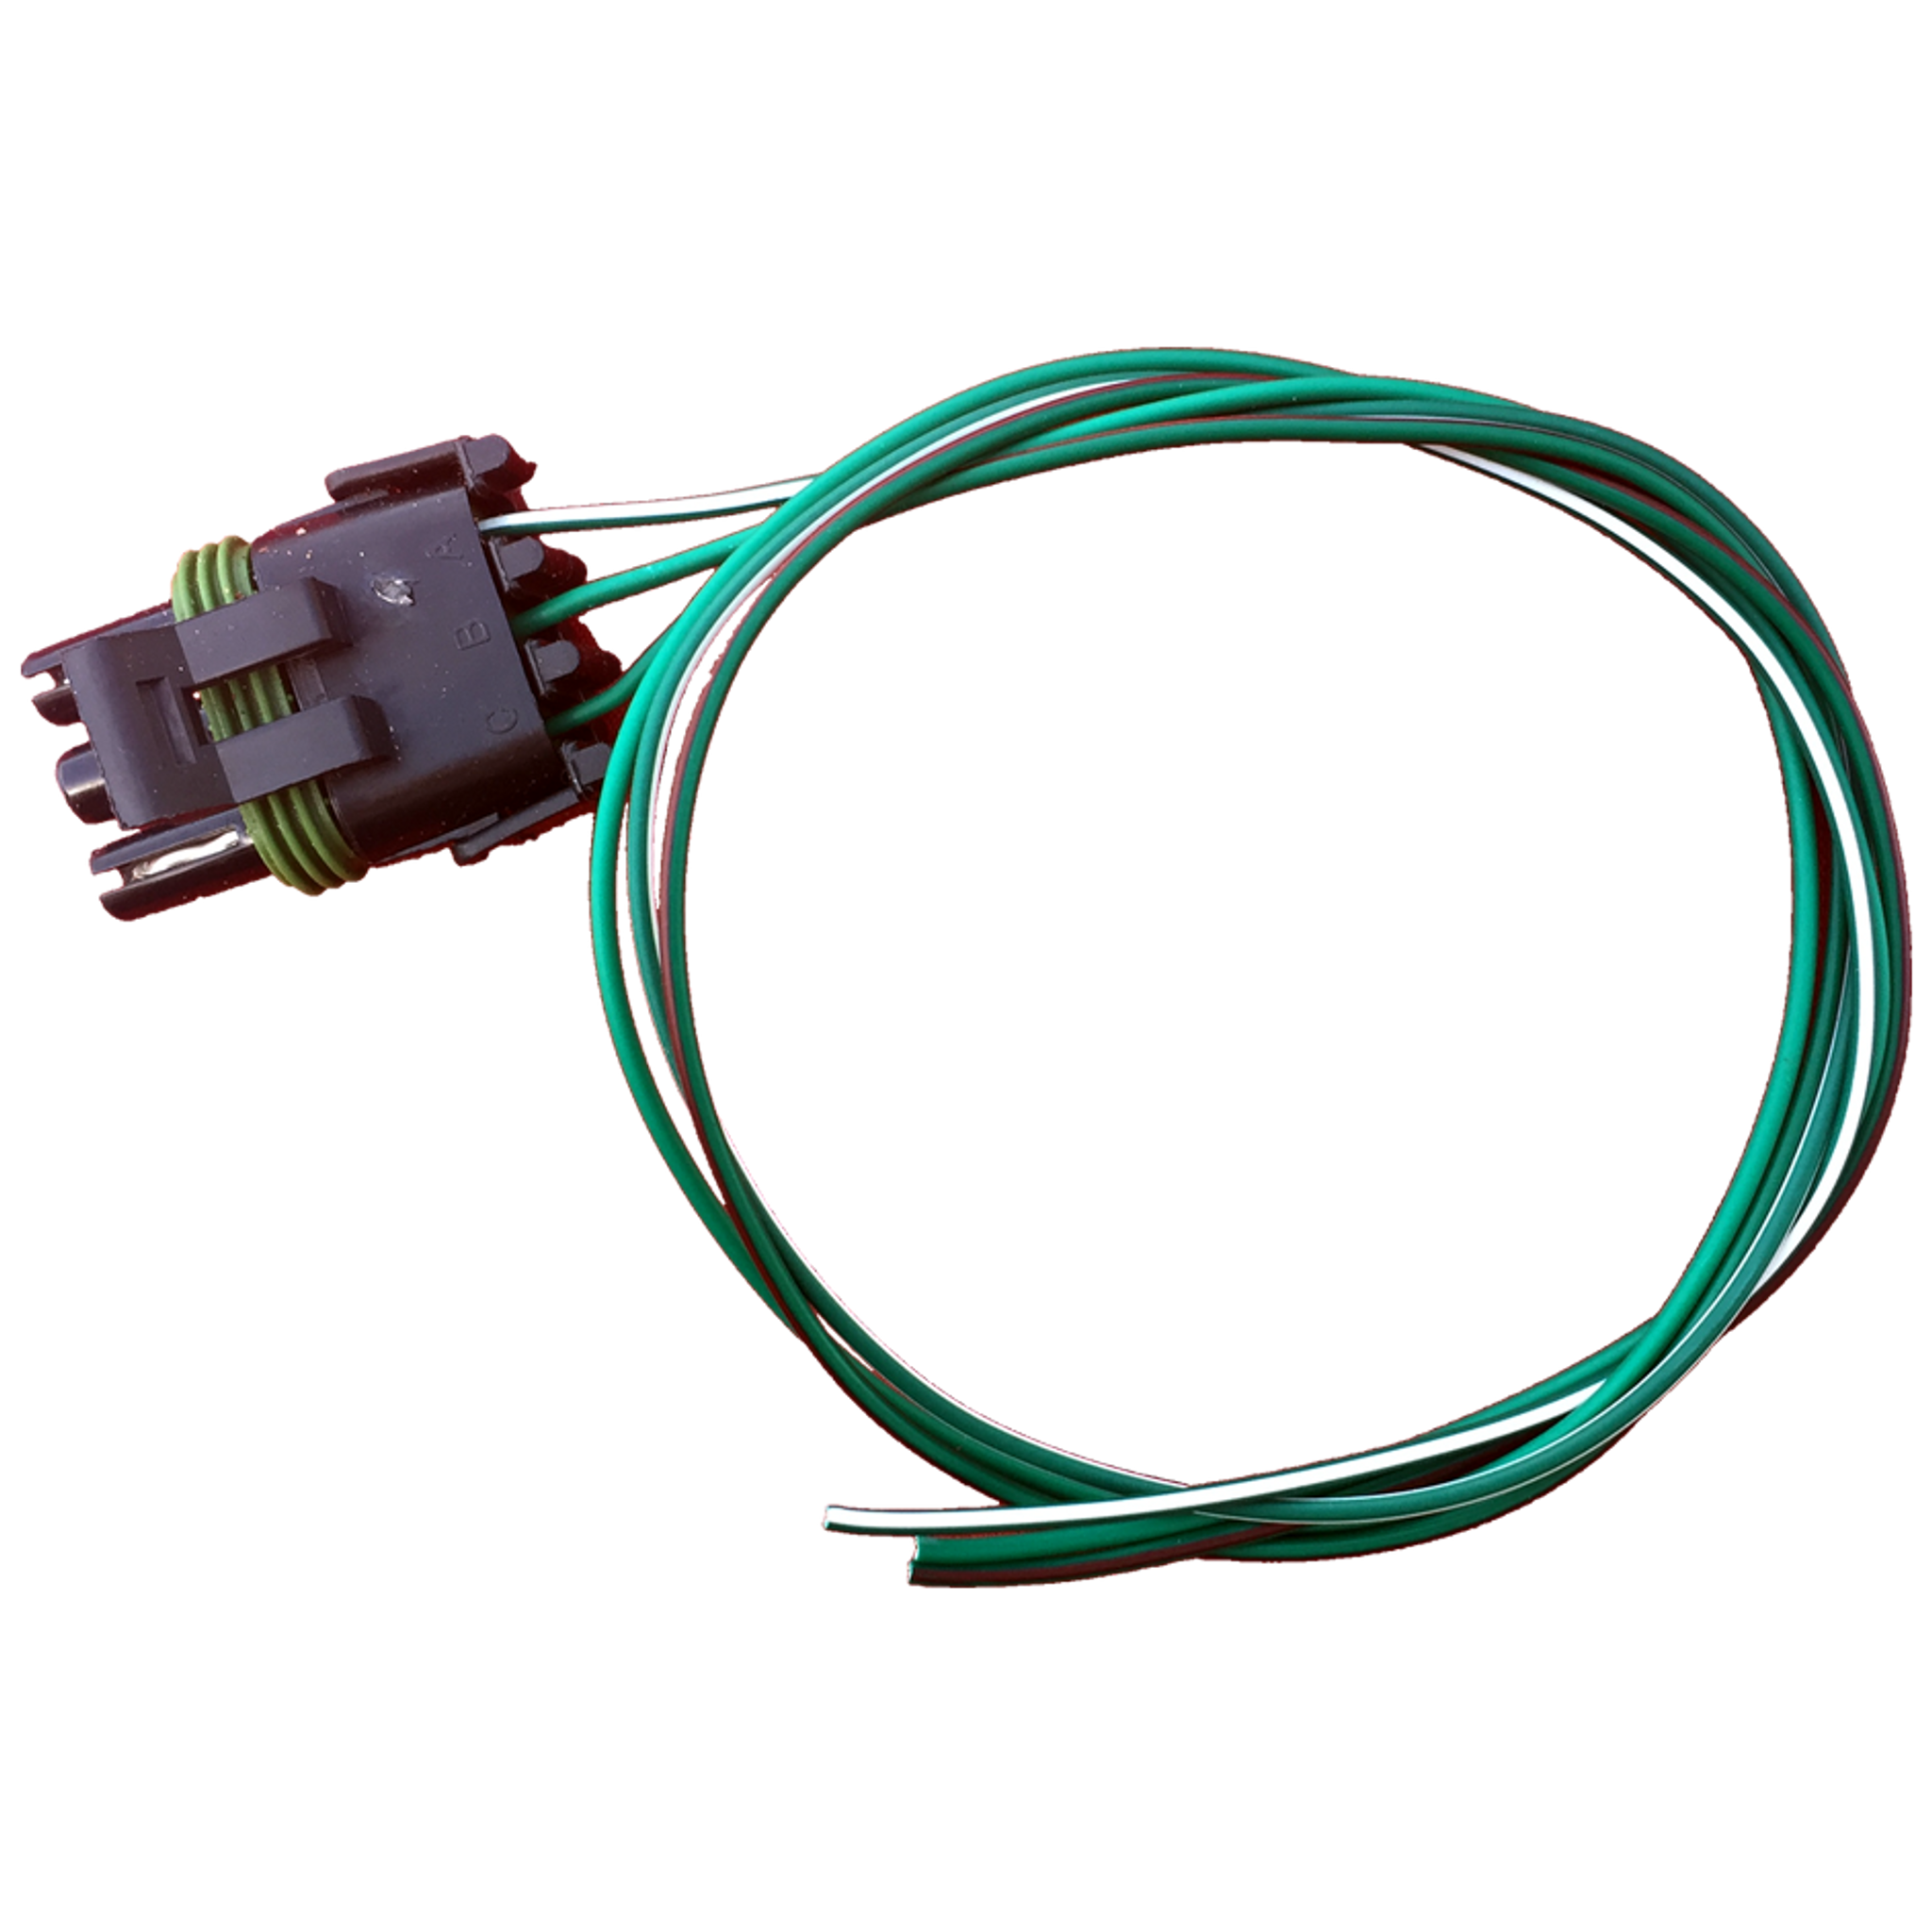 medium resolution of automotive wiring loom